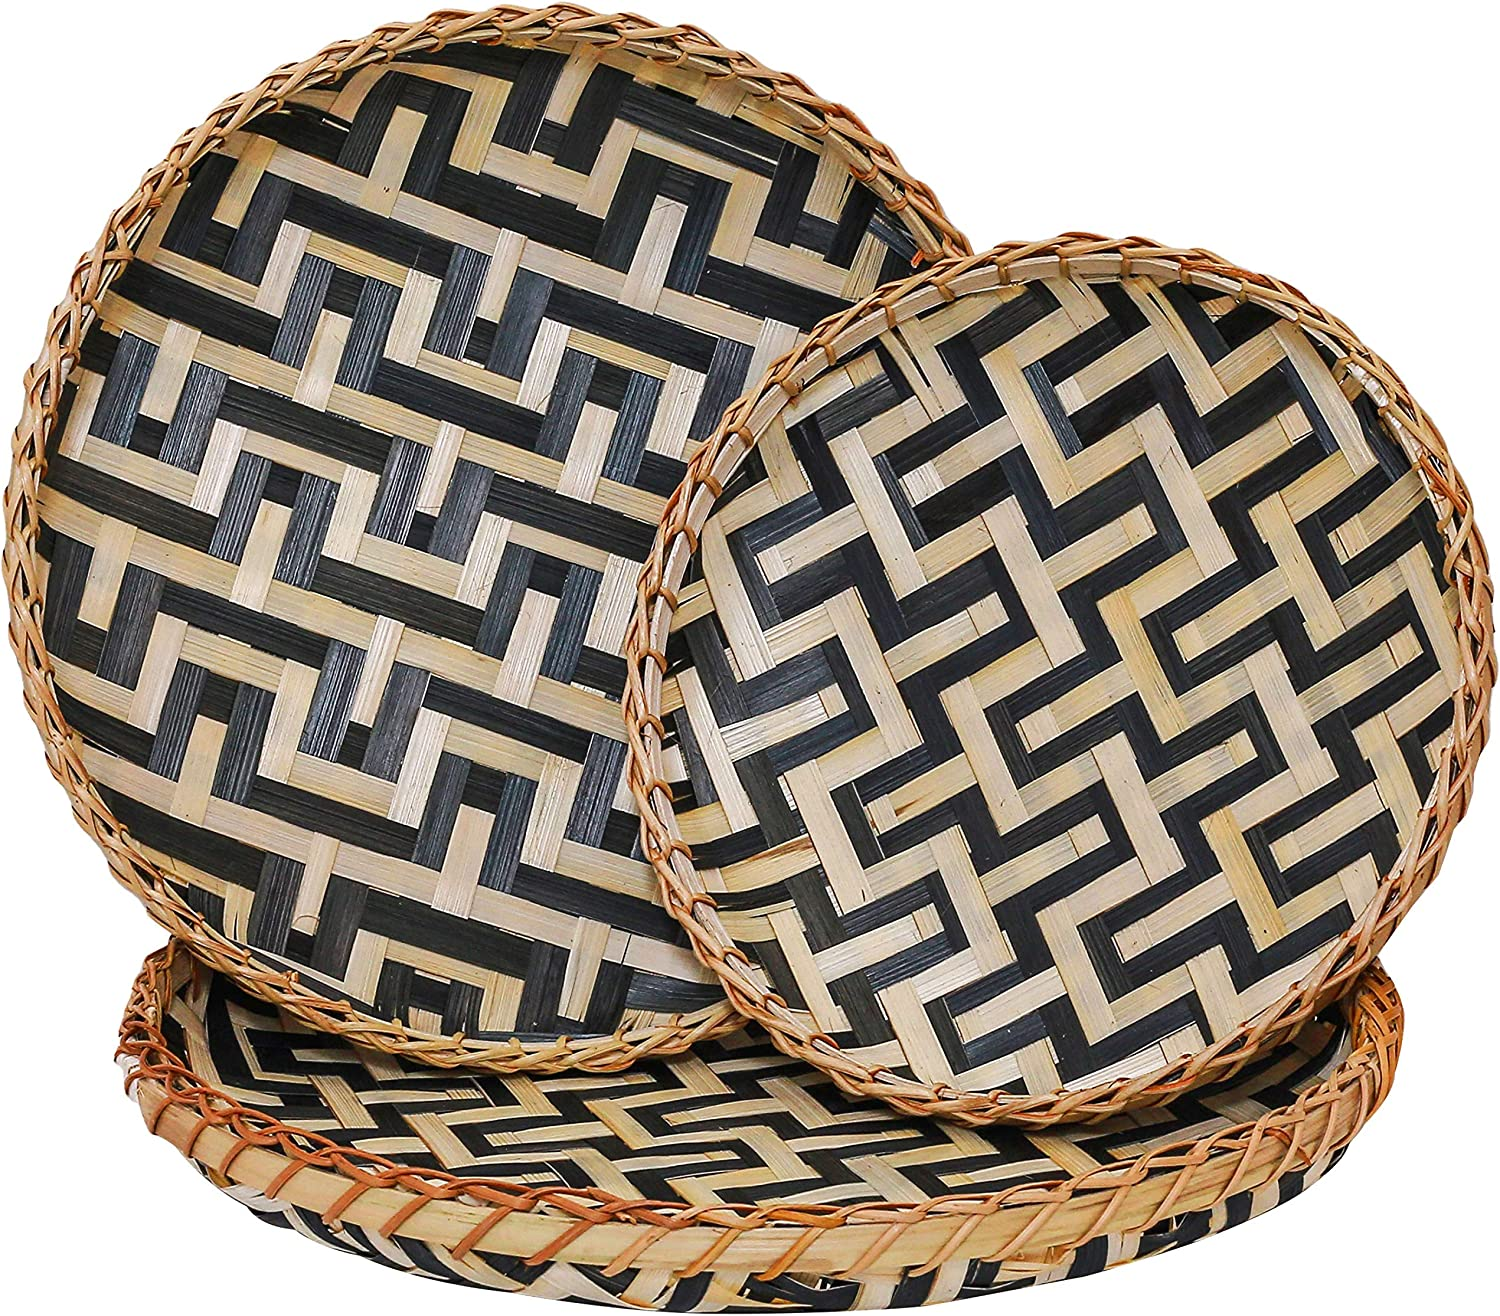 Decorative Wall Baskets Shallow Bamboo Tray Woven Art Decor Set Natural Handmade Fruit Basket Versatile Use for Home Decor, Breakfast Drinks Snack Coffee Table Hanging Serving Wicker (Black Natural)